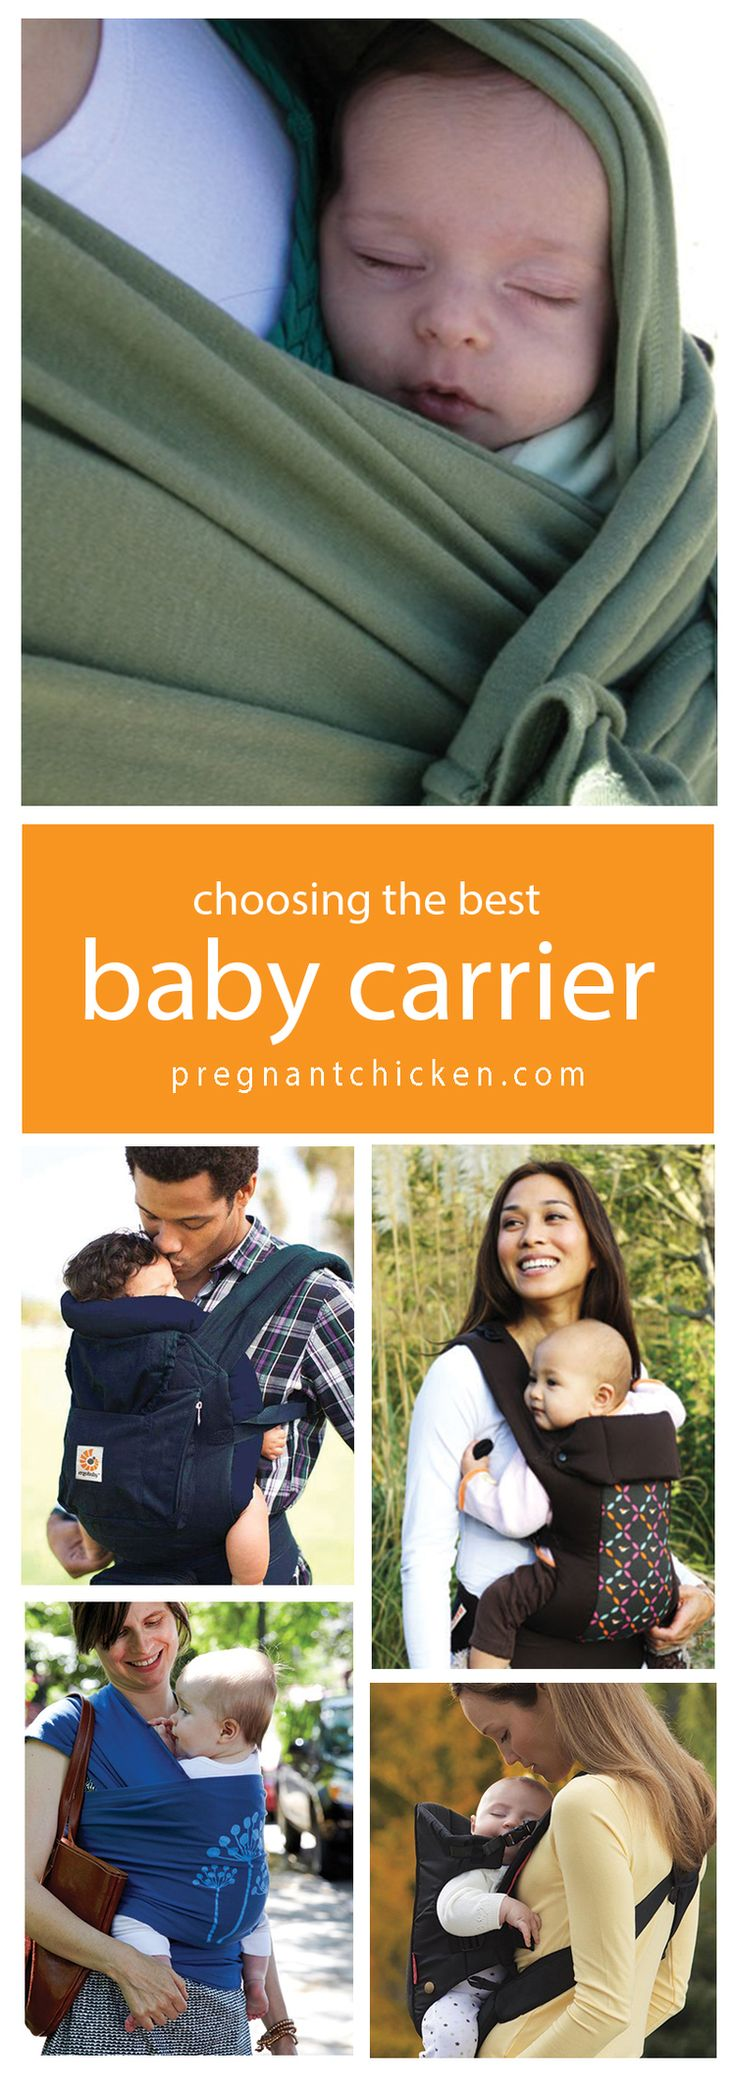 So you need to haul around your baby girl or baby boy but you can't figure out what to use? Check out my top picks for the best baby  carriers!